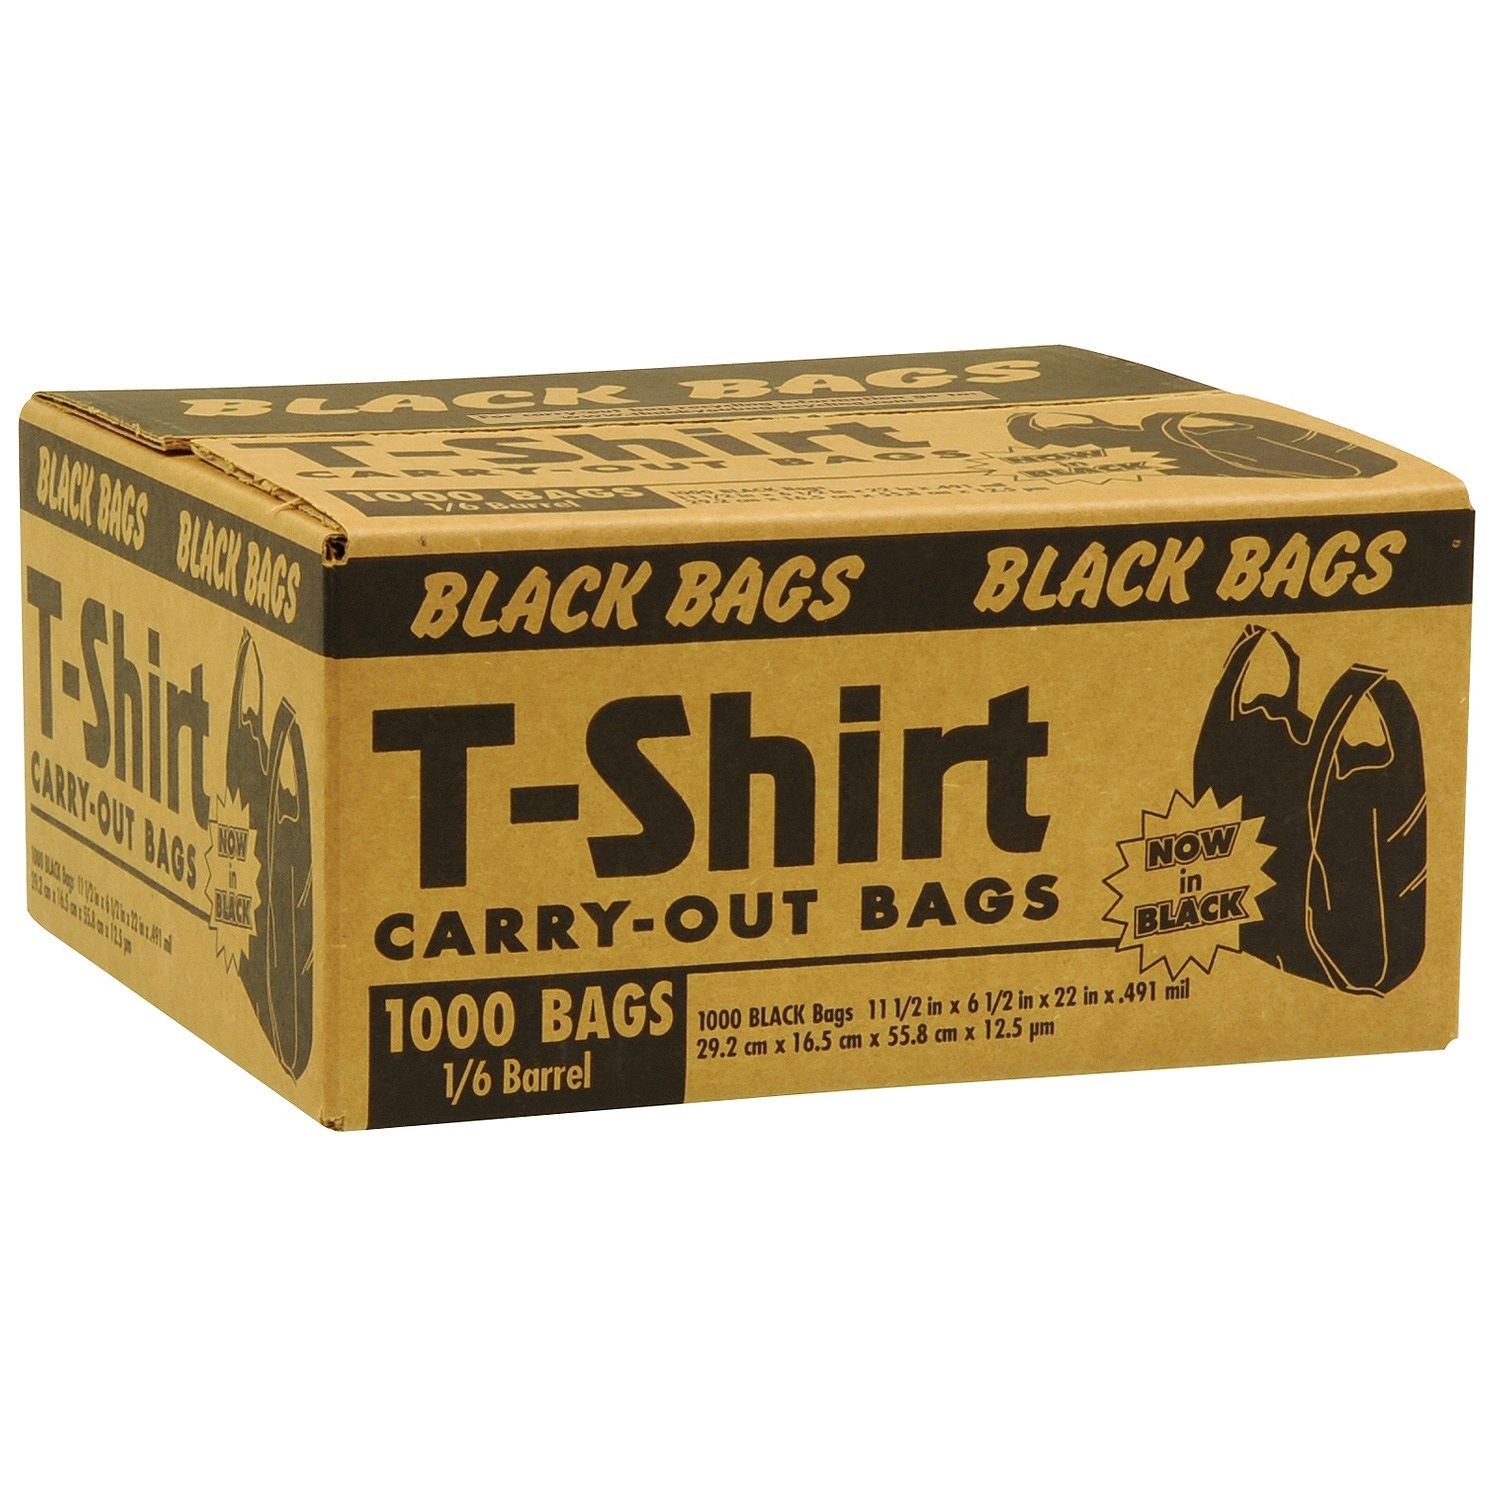 Black T-Shirt Carryout Bags (1,000 ct.) by Poly-America